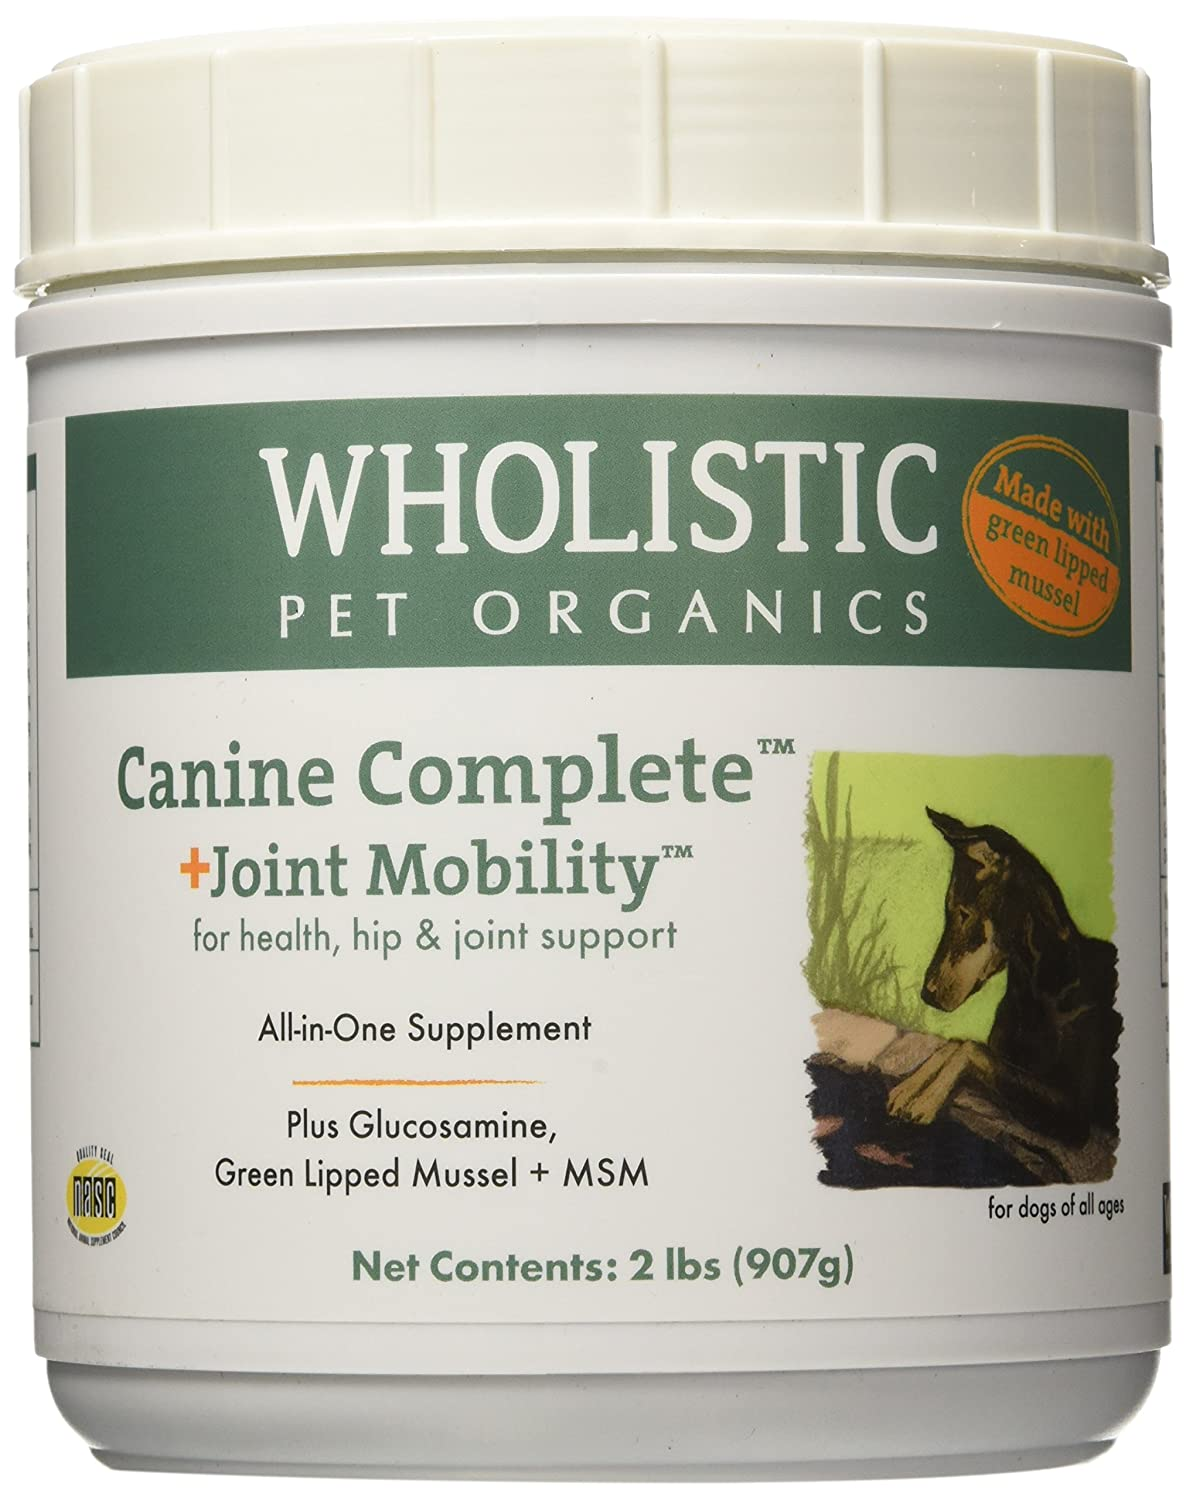 2 lb Wholistic Pet Organics Canine Complete Plus Joint Mobility with Green Lipped Mussel Supplement, 2 lb